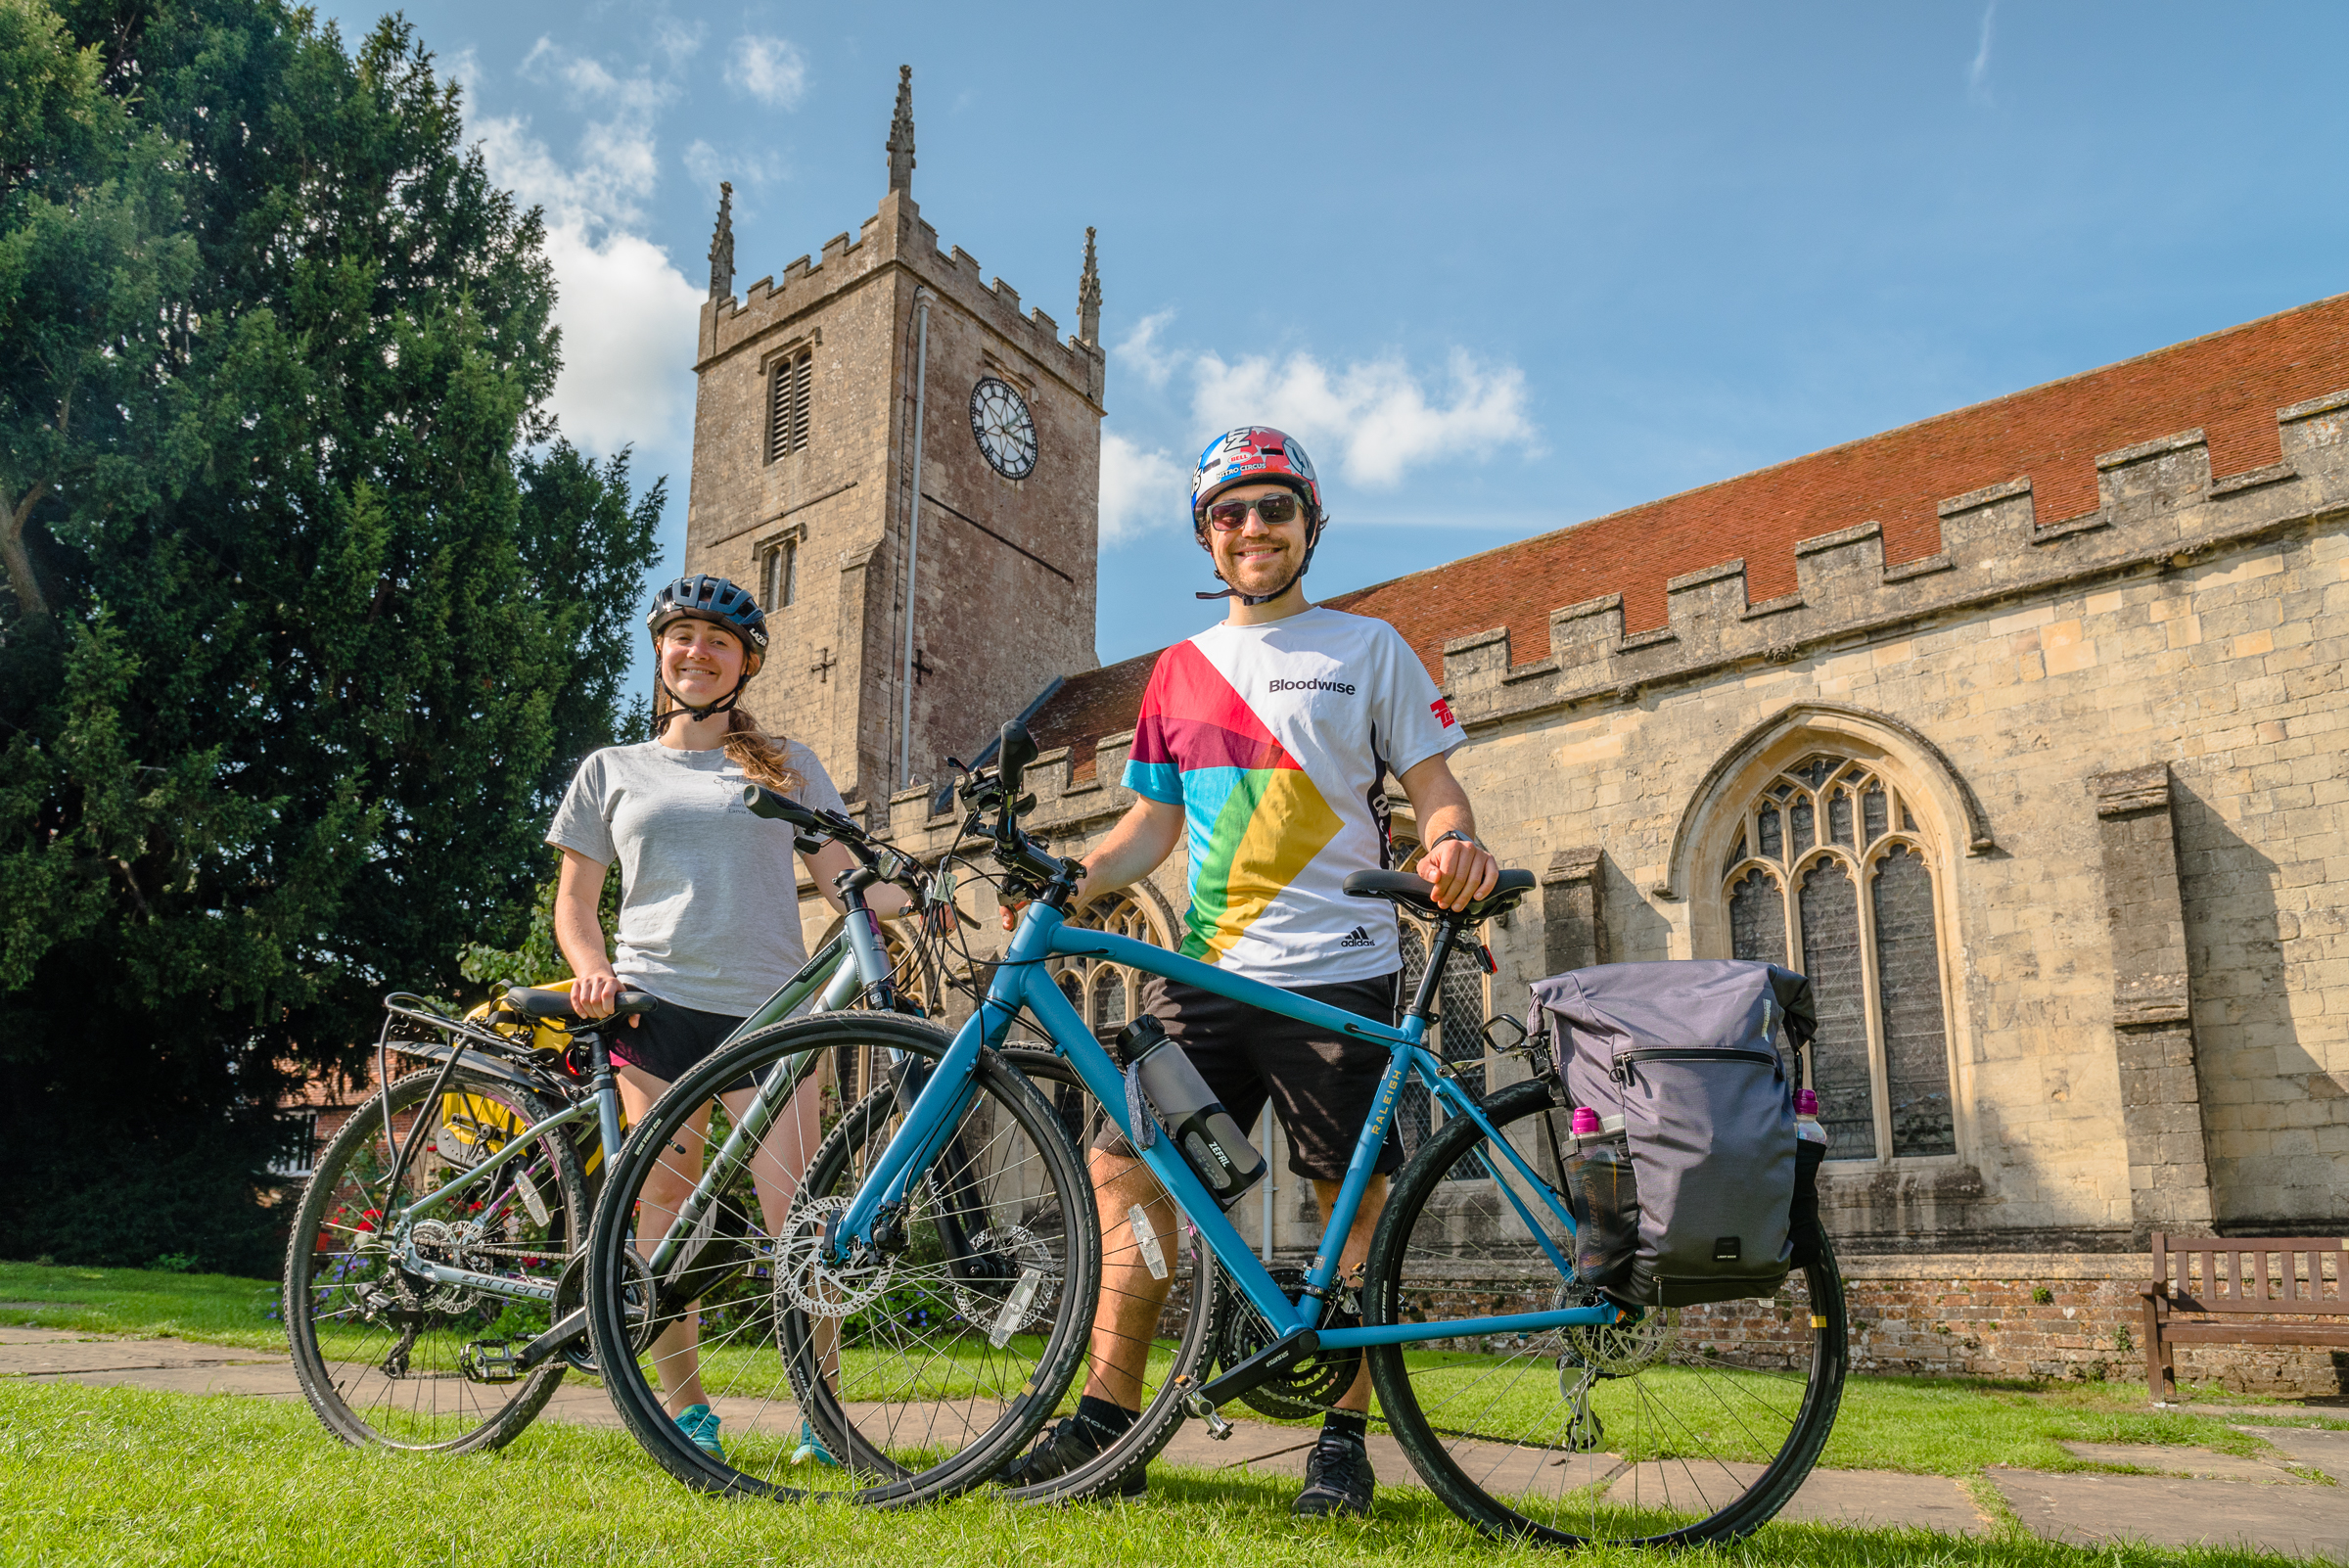 Stephanie Williams and James Carey with their bikes outside St Marys Church in Marlborough Gerry Lynch